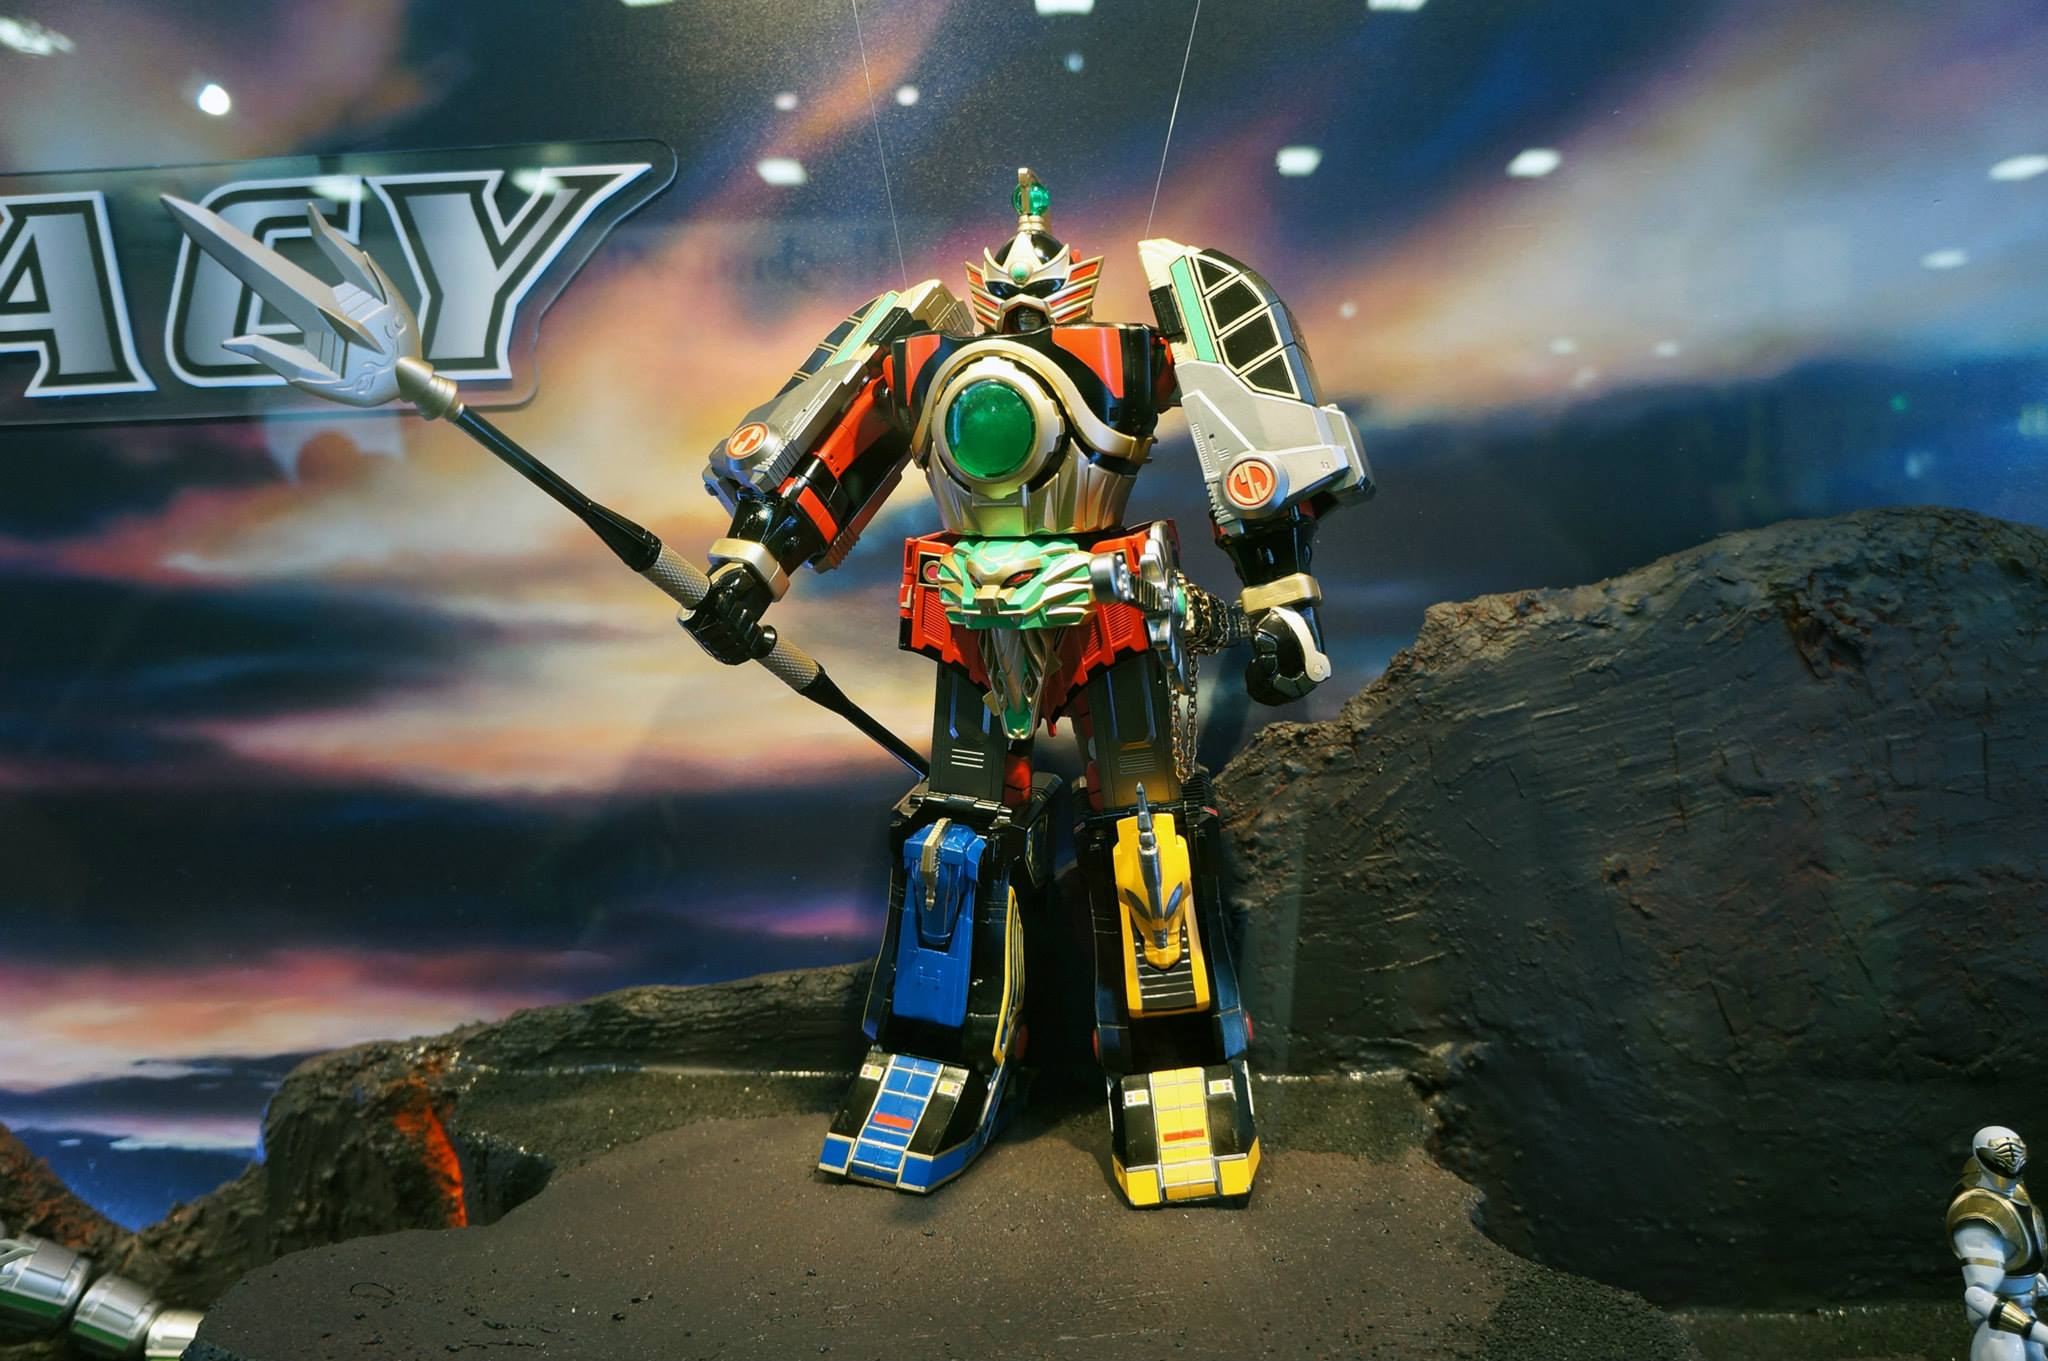 Legacy Thunder Megazord and Legacy Blade Blaster on Display at SDCC 2015